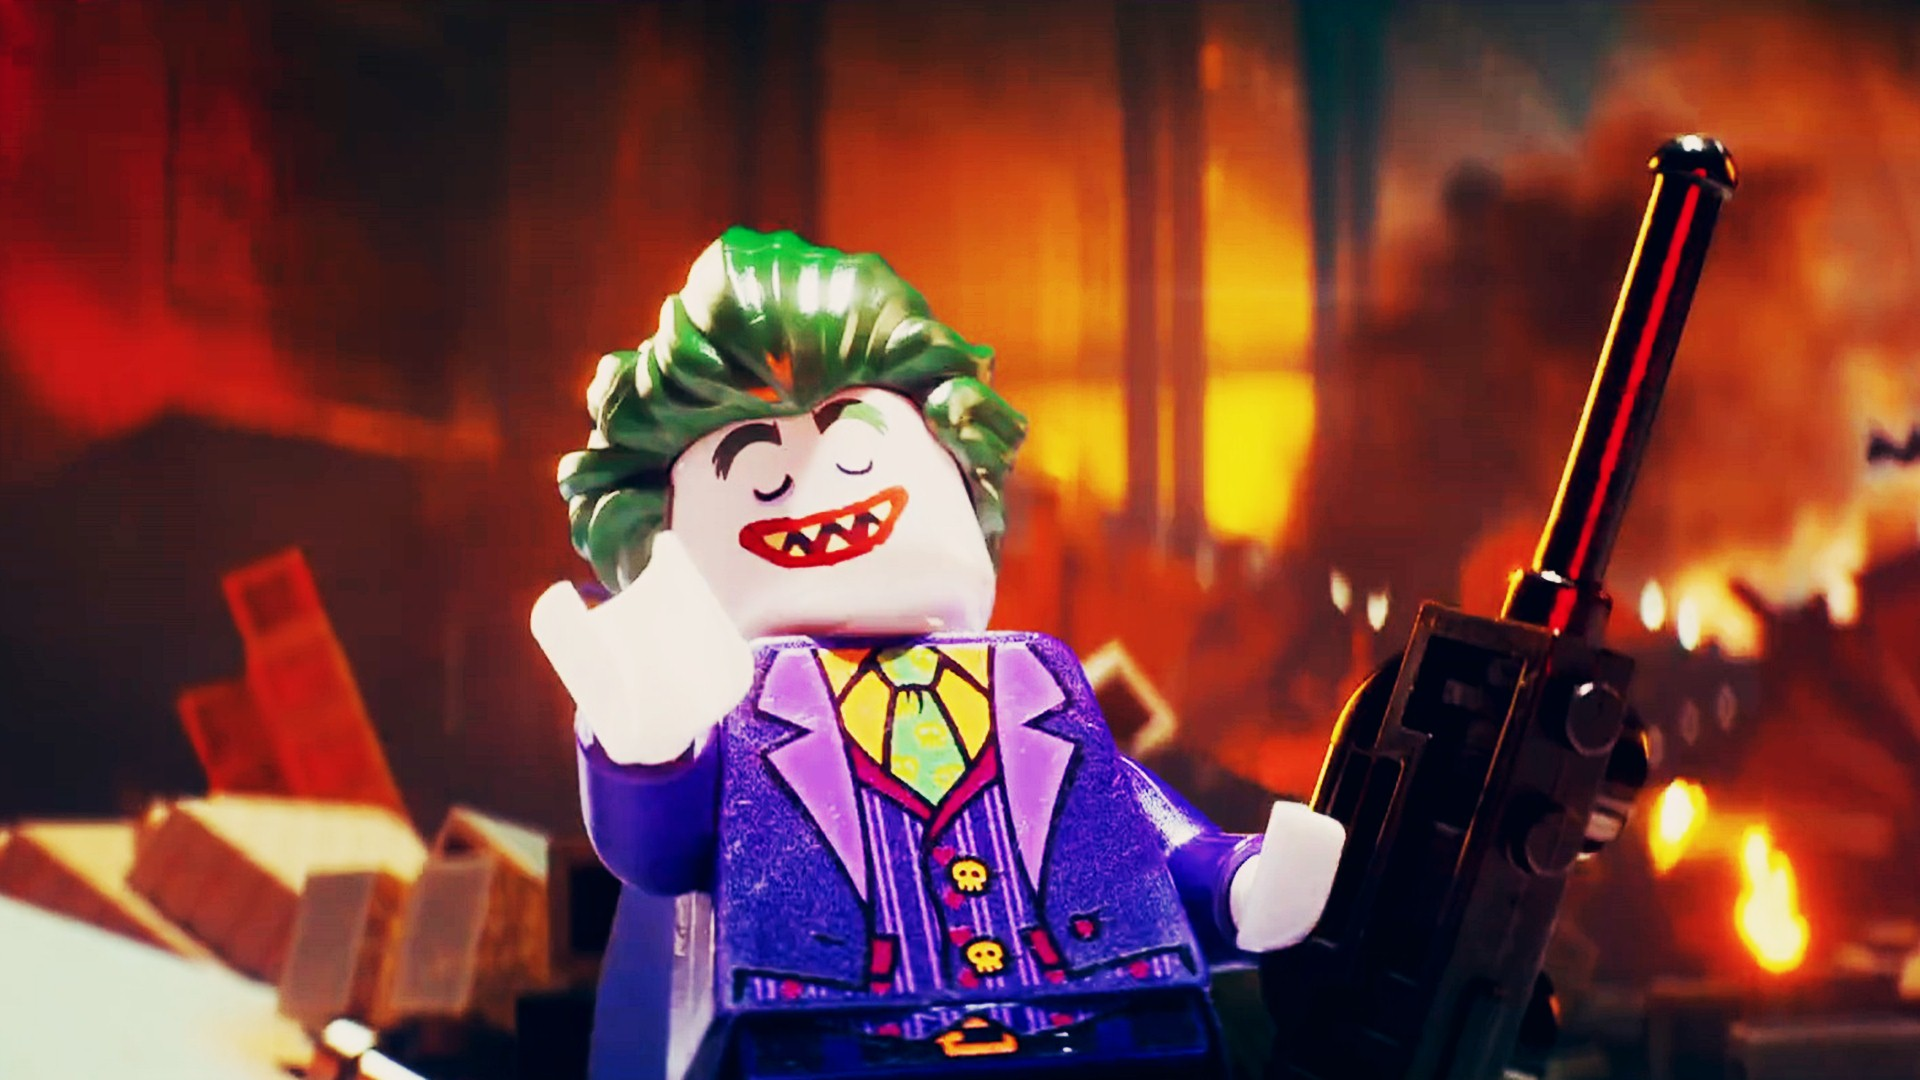 The Lego Batman Movie Joker Wallpaper Lego Batman Movie Wallpaper Joker 372774 Hd Wallpaper Backgrounds Download